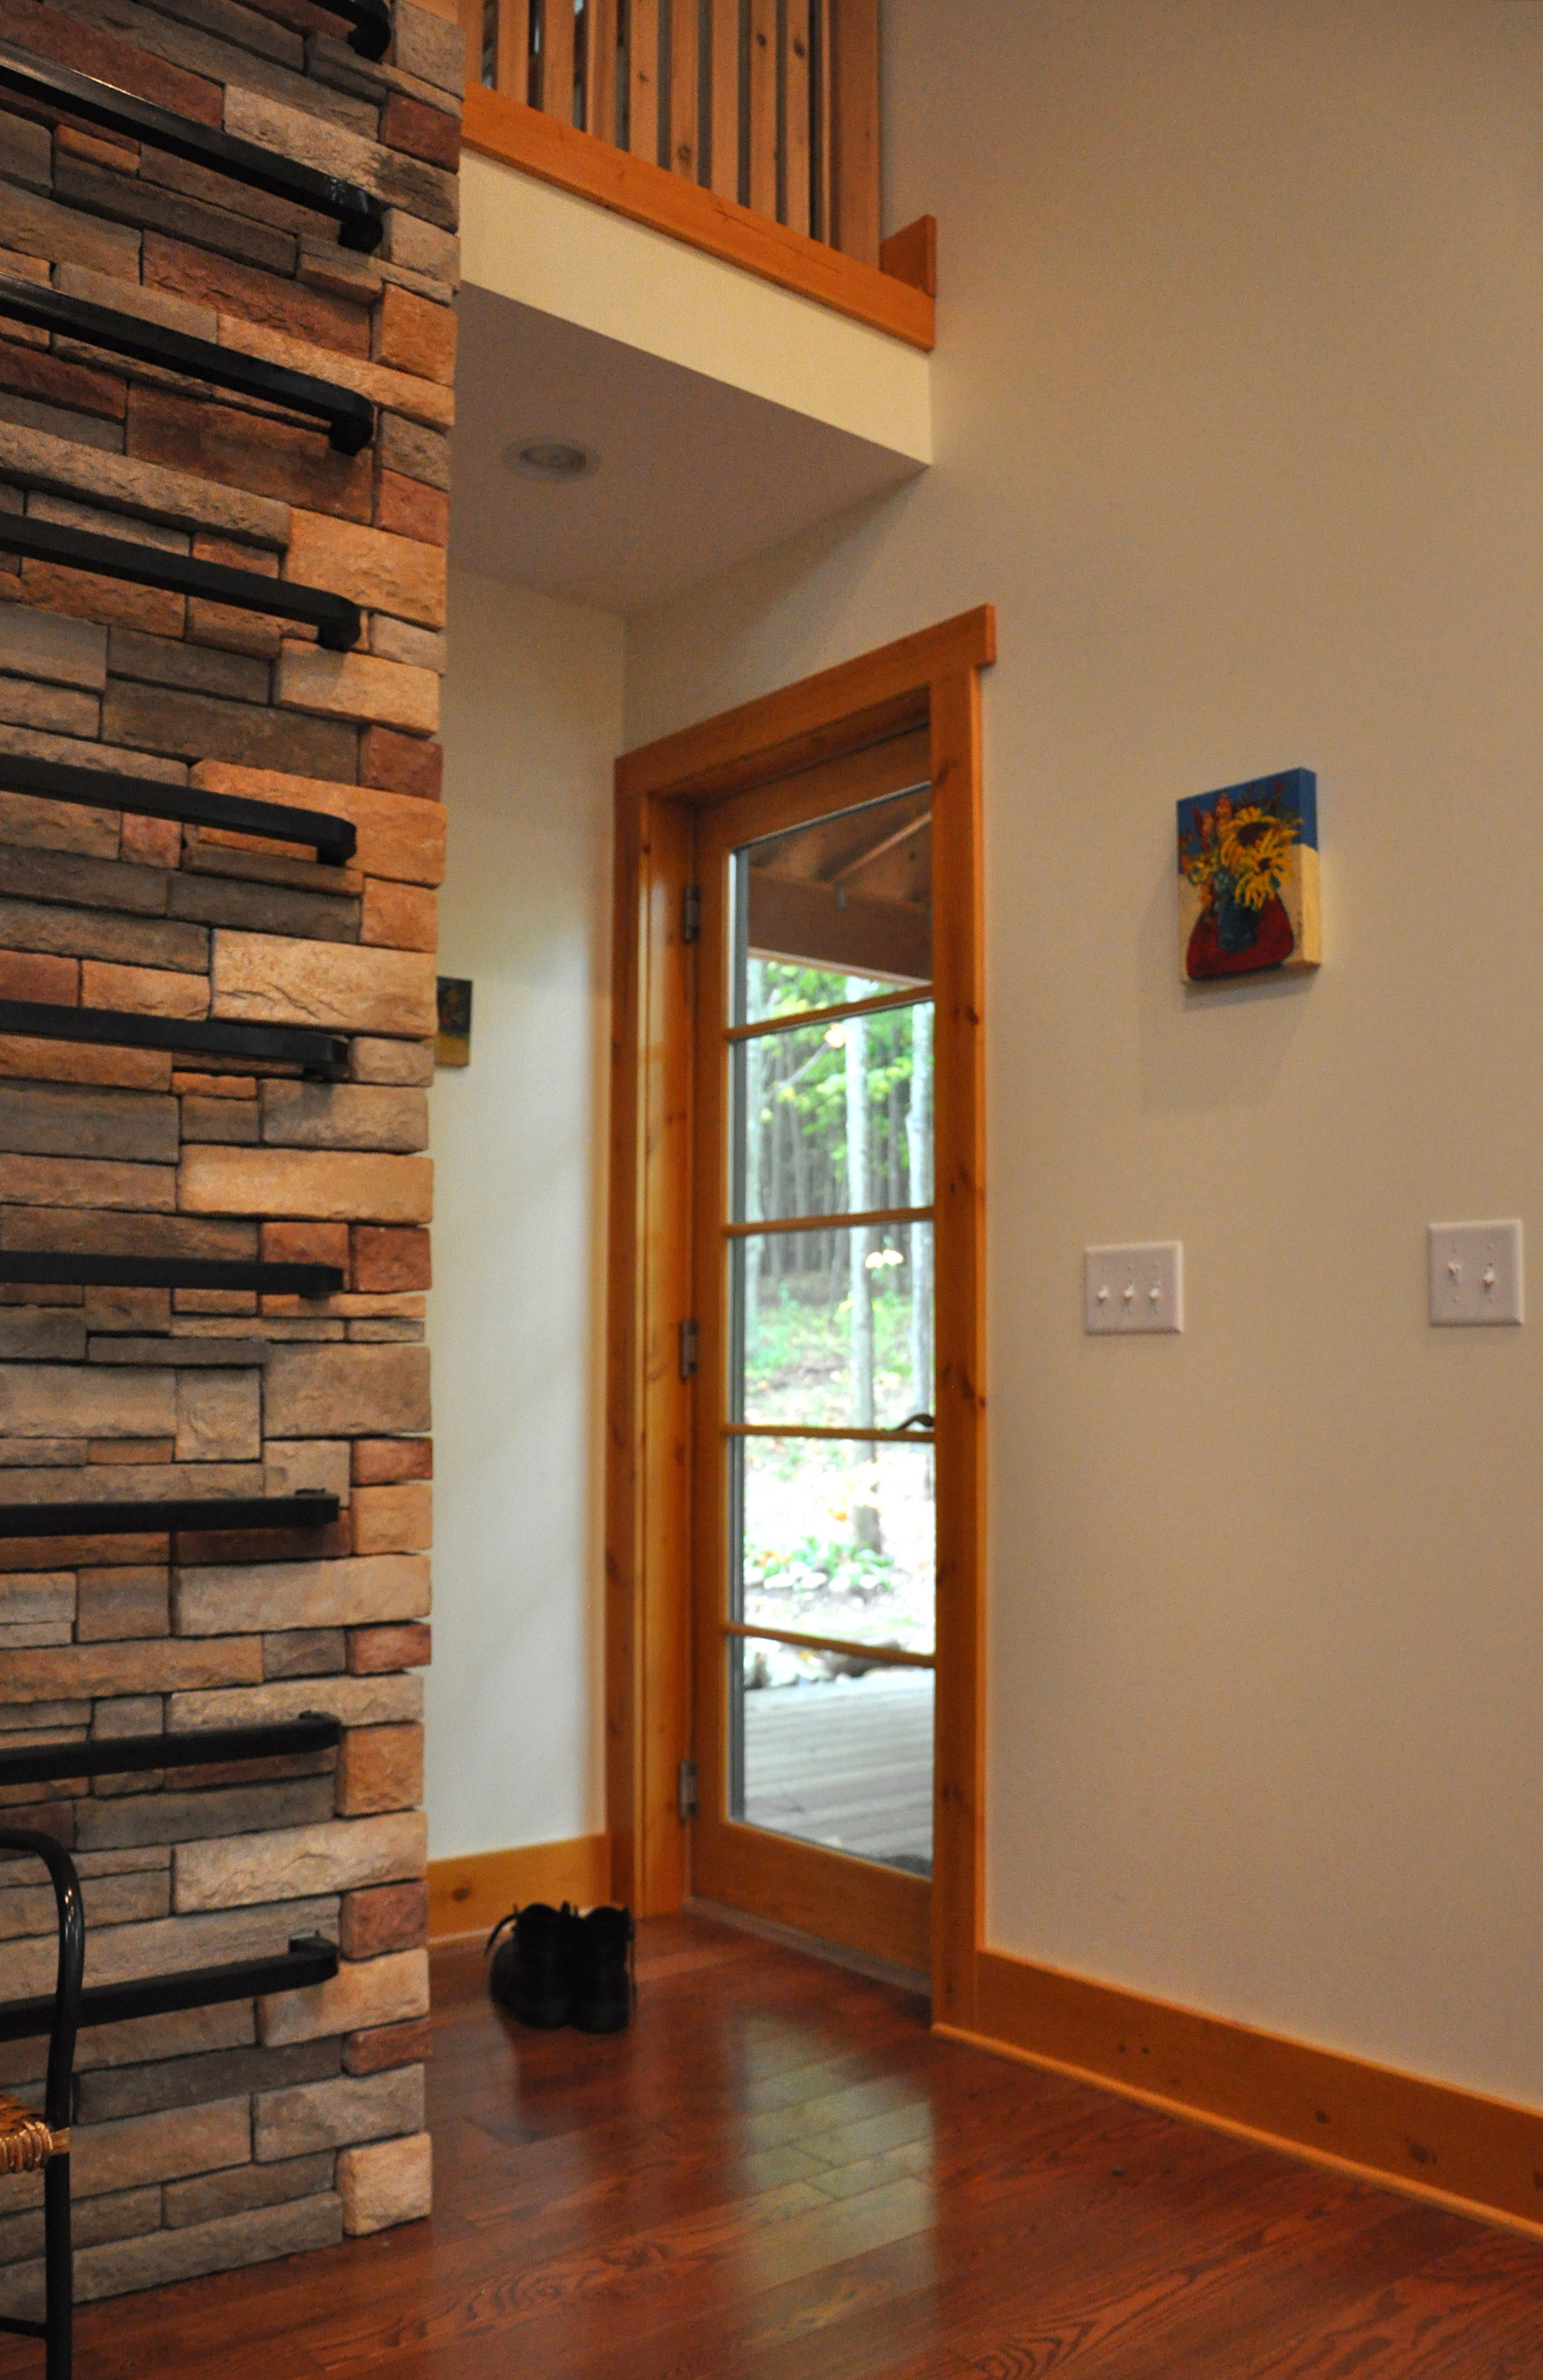 back door to porch, ladder on stone wall to loft, wood floors